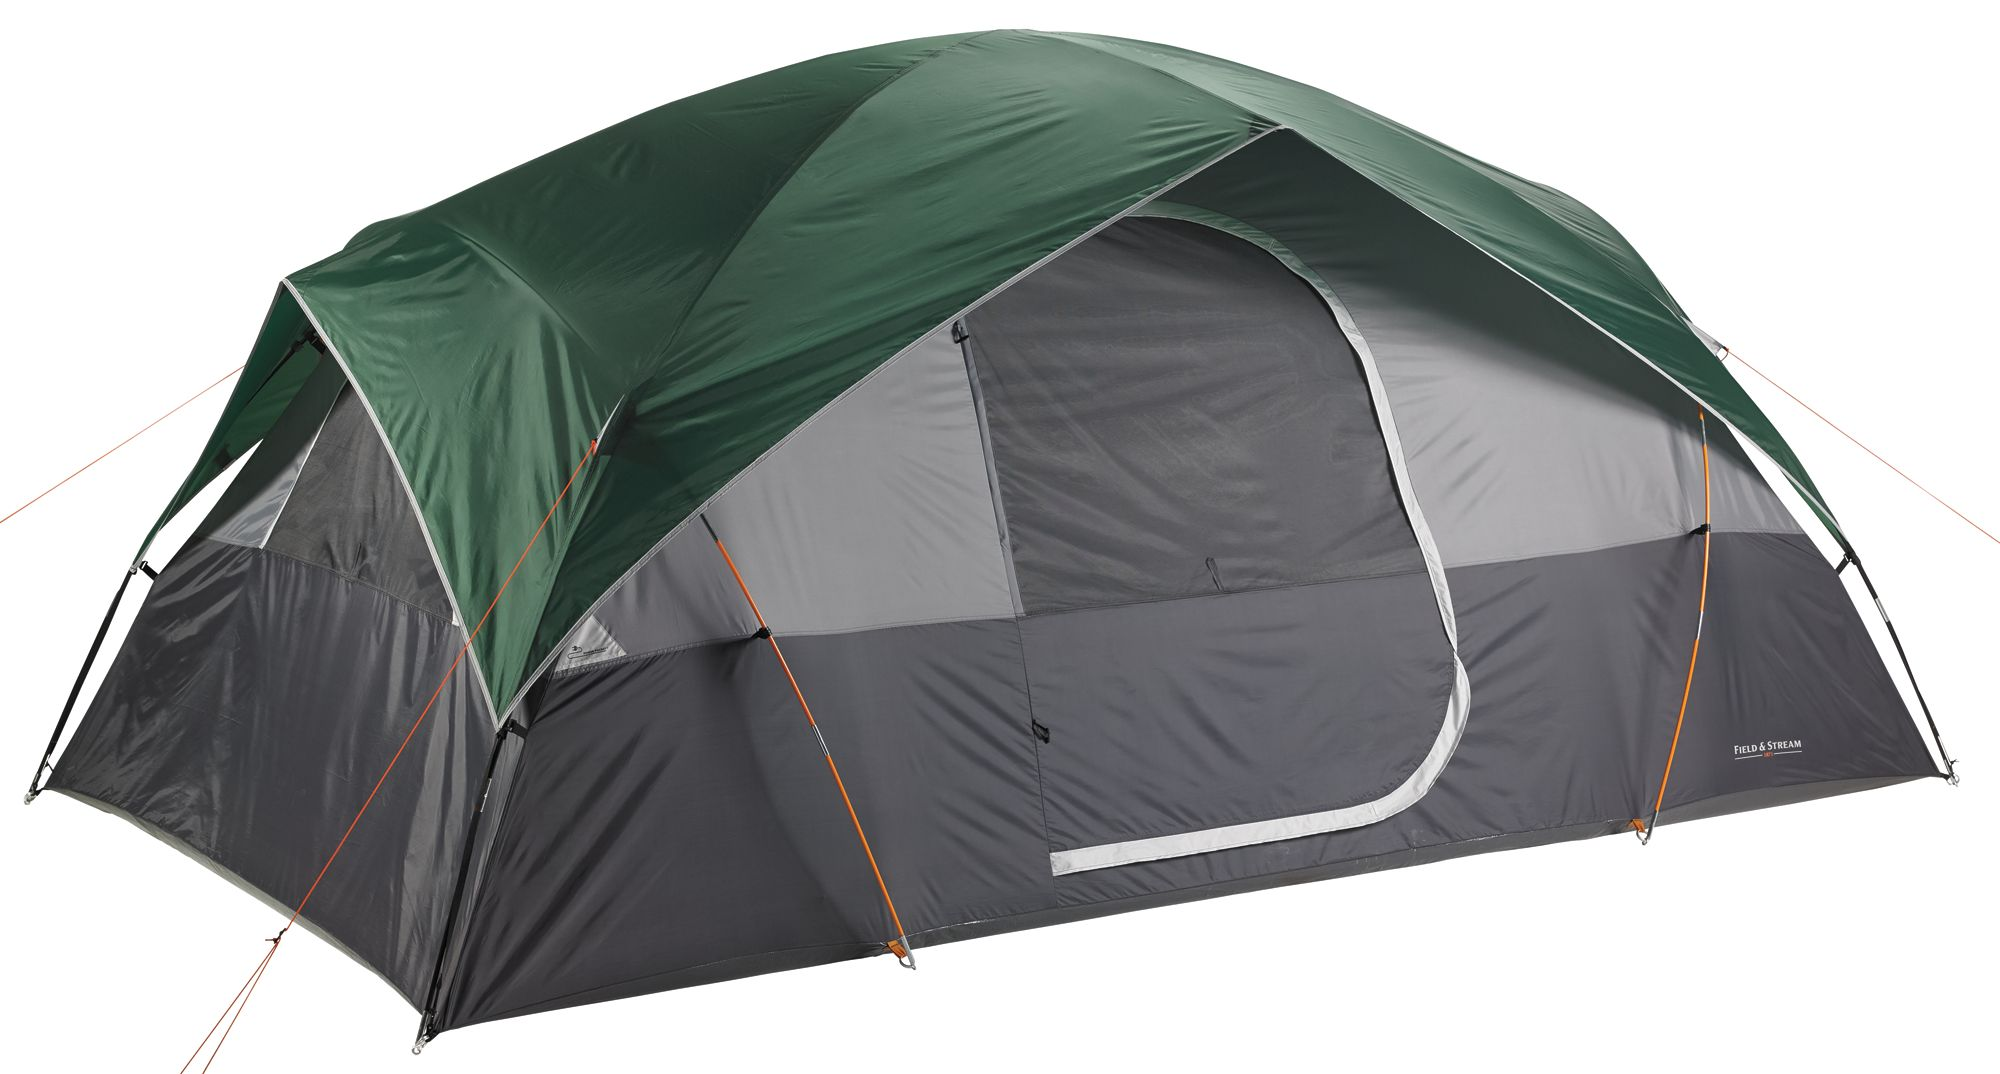 photo regarding Field and Stream Coupons Printable identified as Marketplace Circulation Cross Vent 8-Individual Tent for Accurately $69.98 +